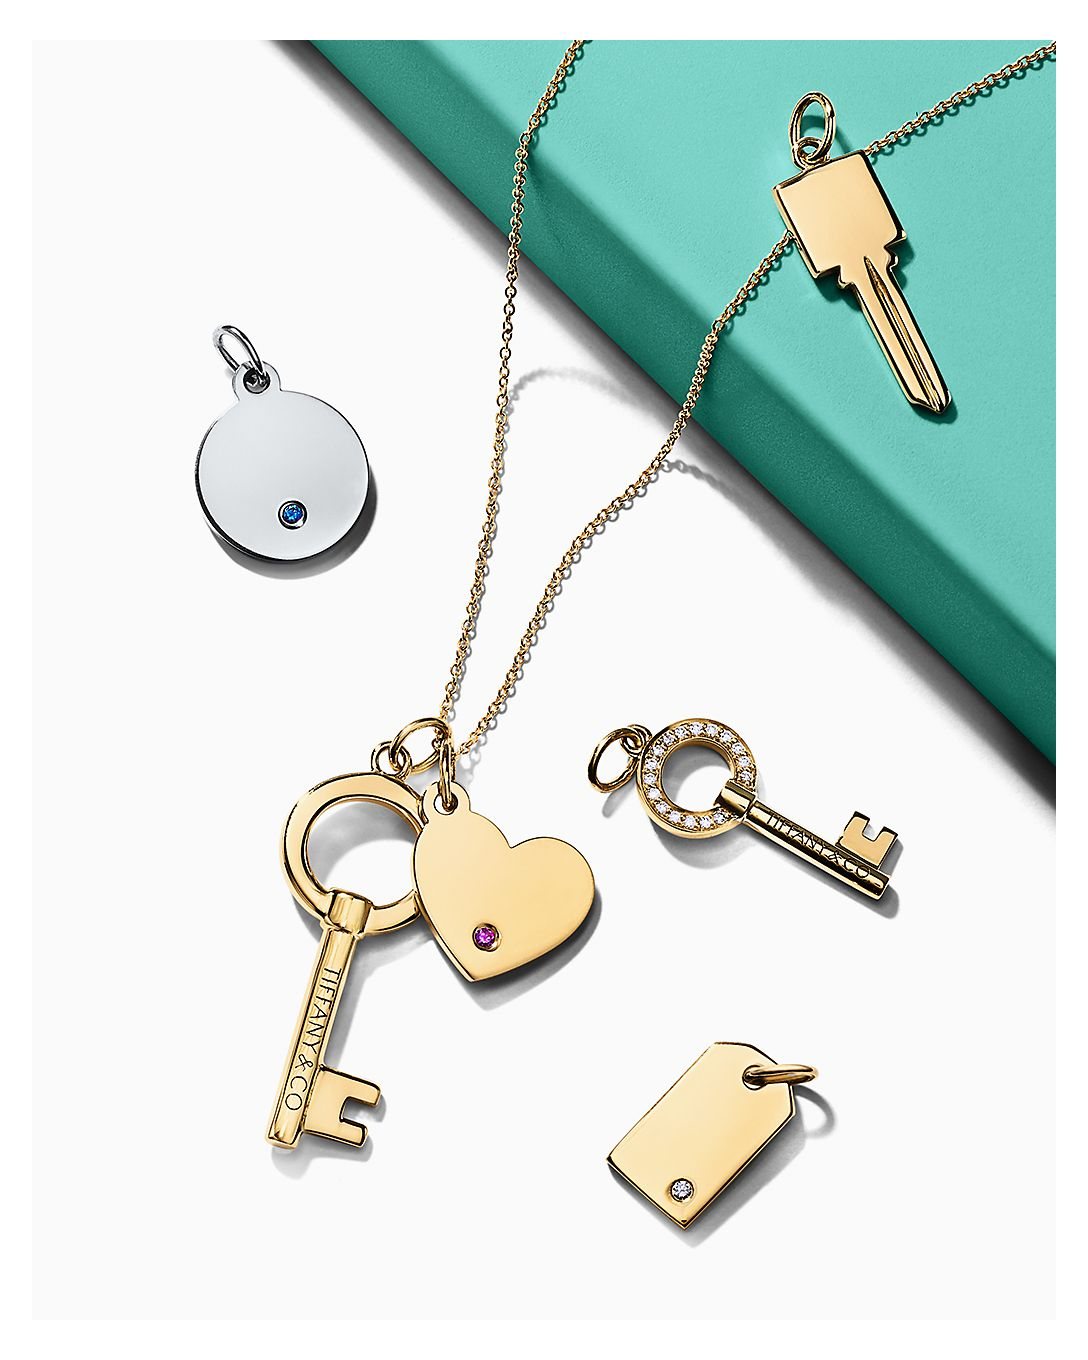 Shop Tiffany & Co. Charms